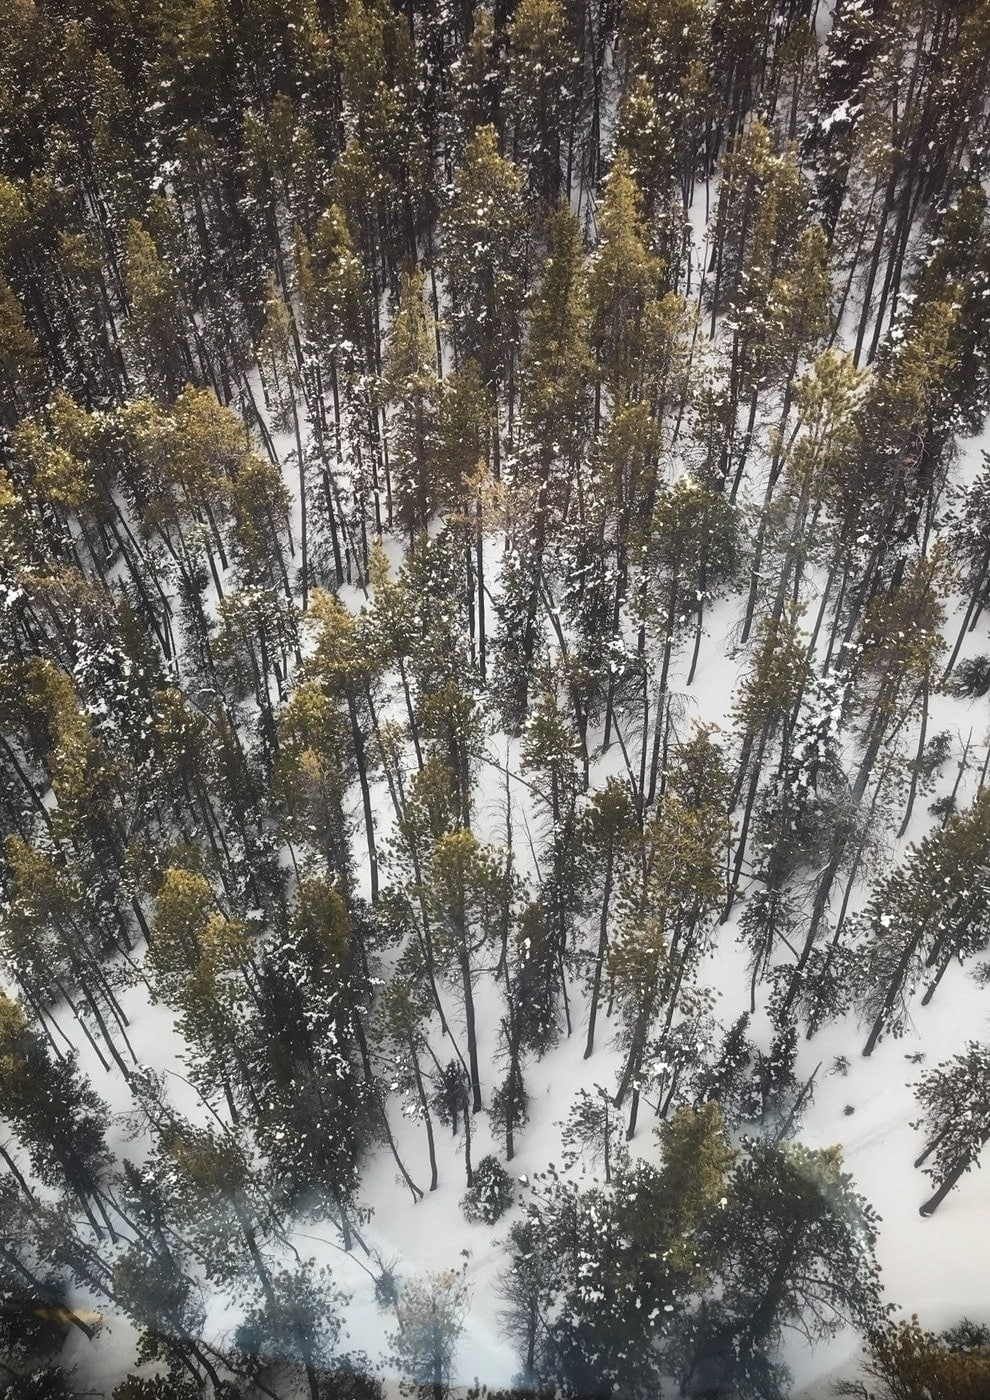 Looking down at the trees from the Sulphur Mountain gondola